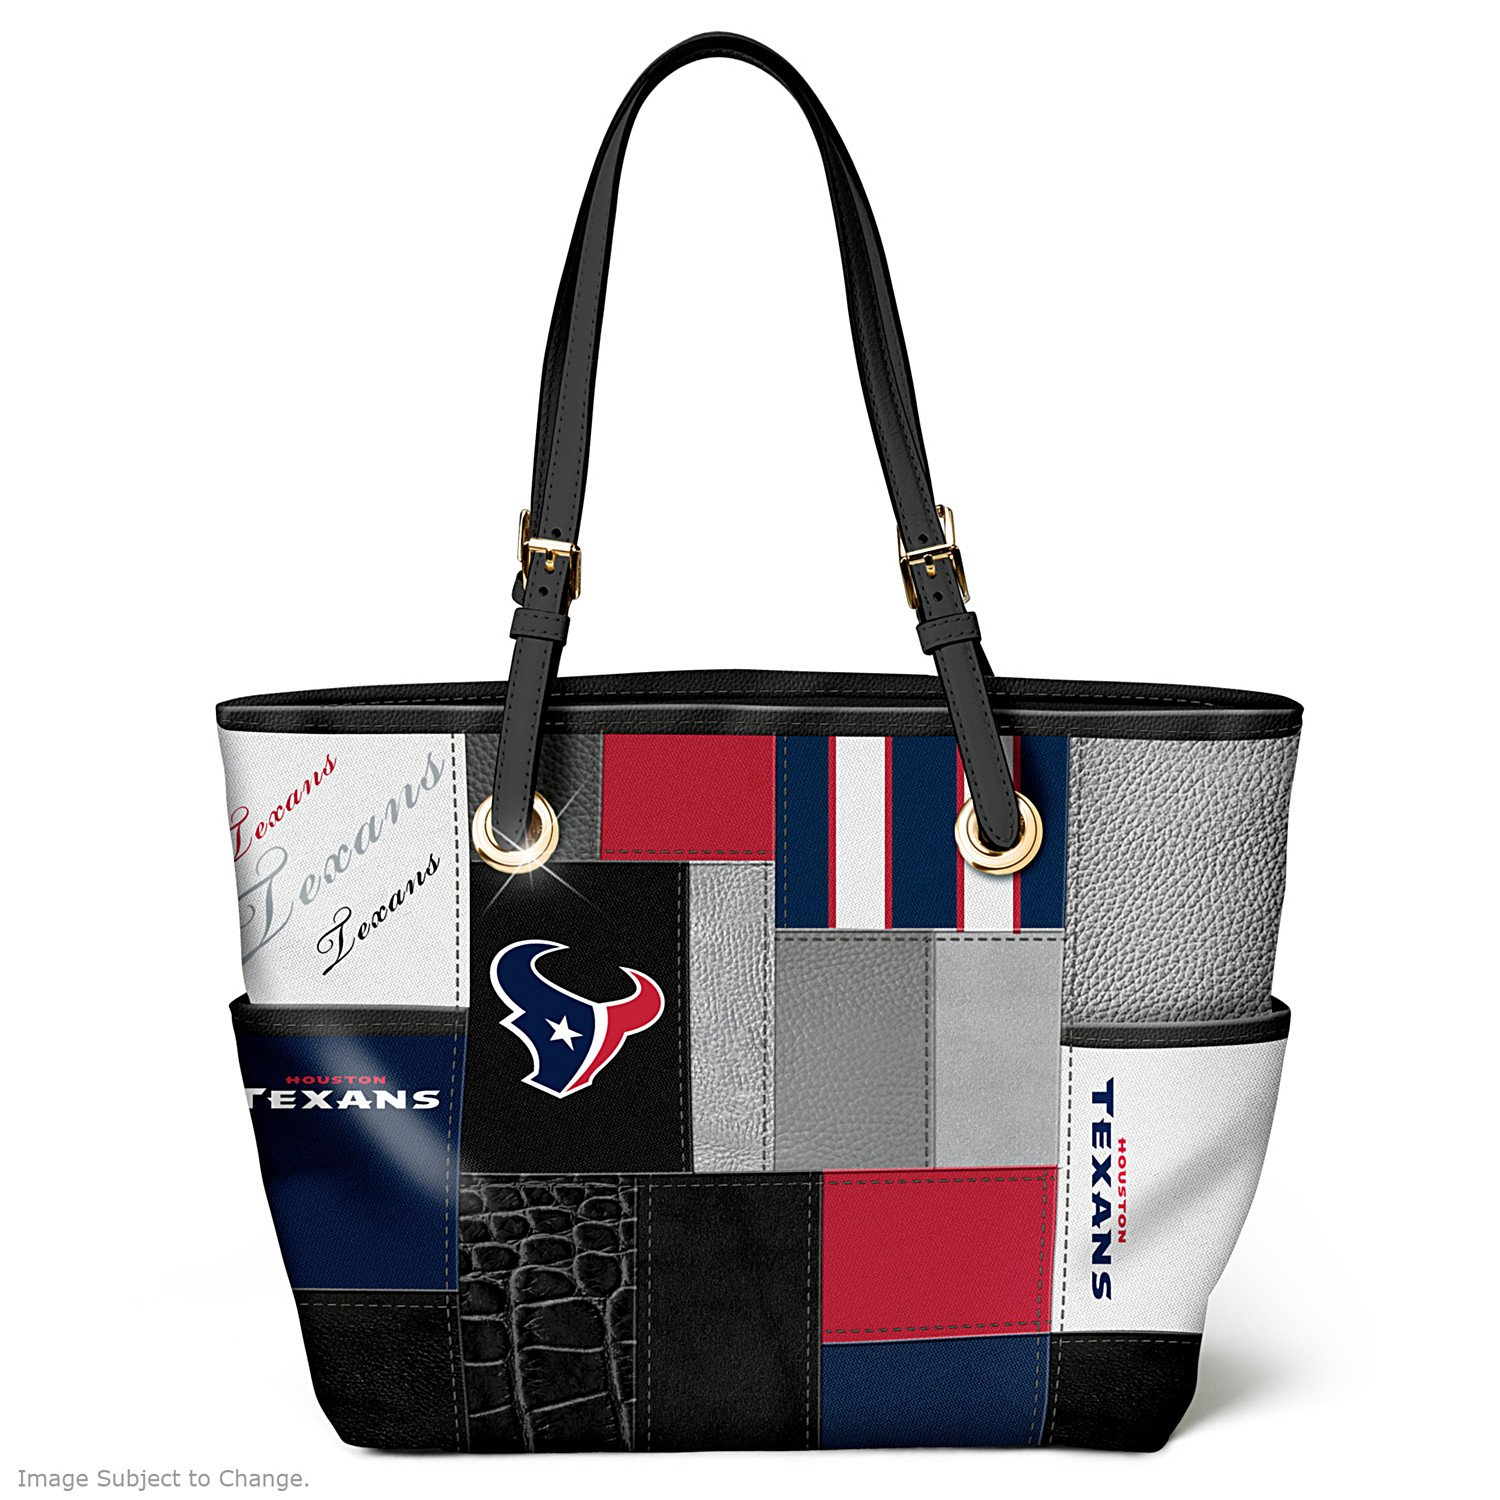 For The Love Of The Game NFL Houston Texans Tote Bag by The Bradford Exchange